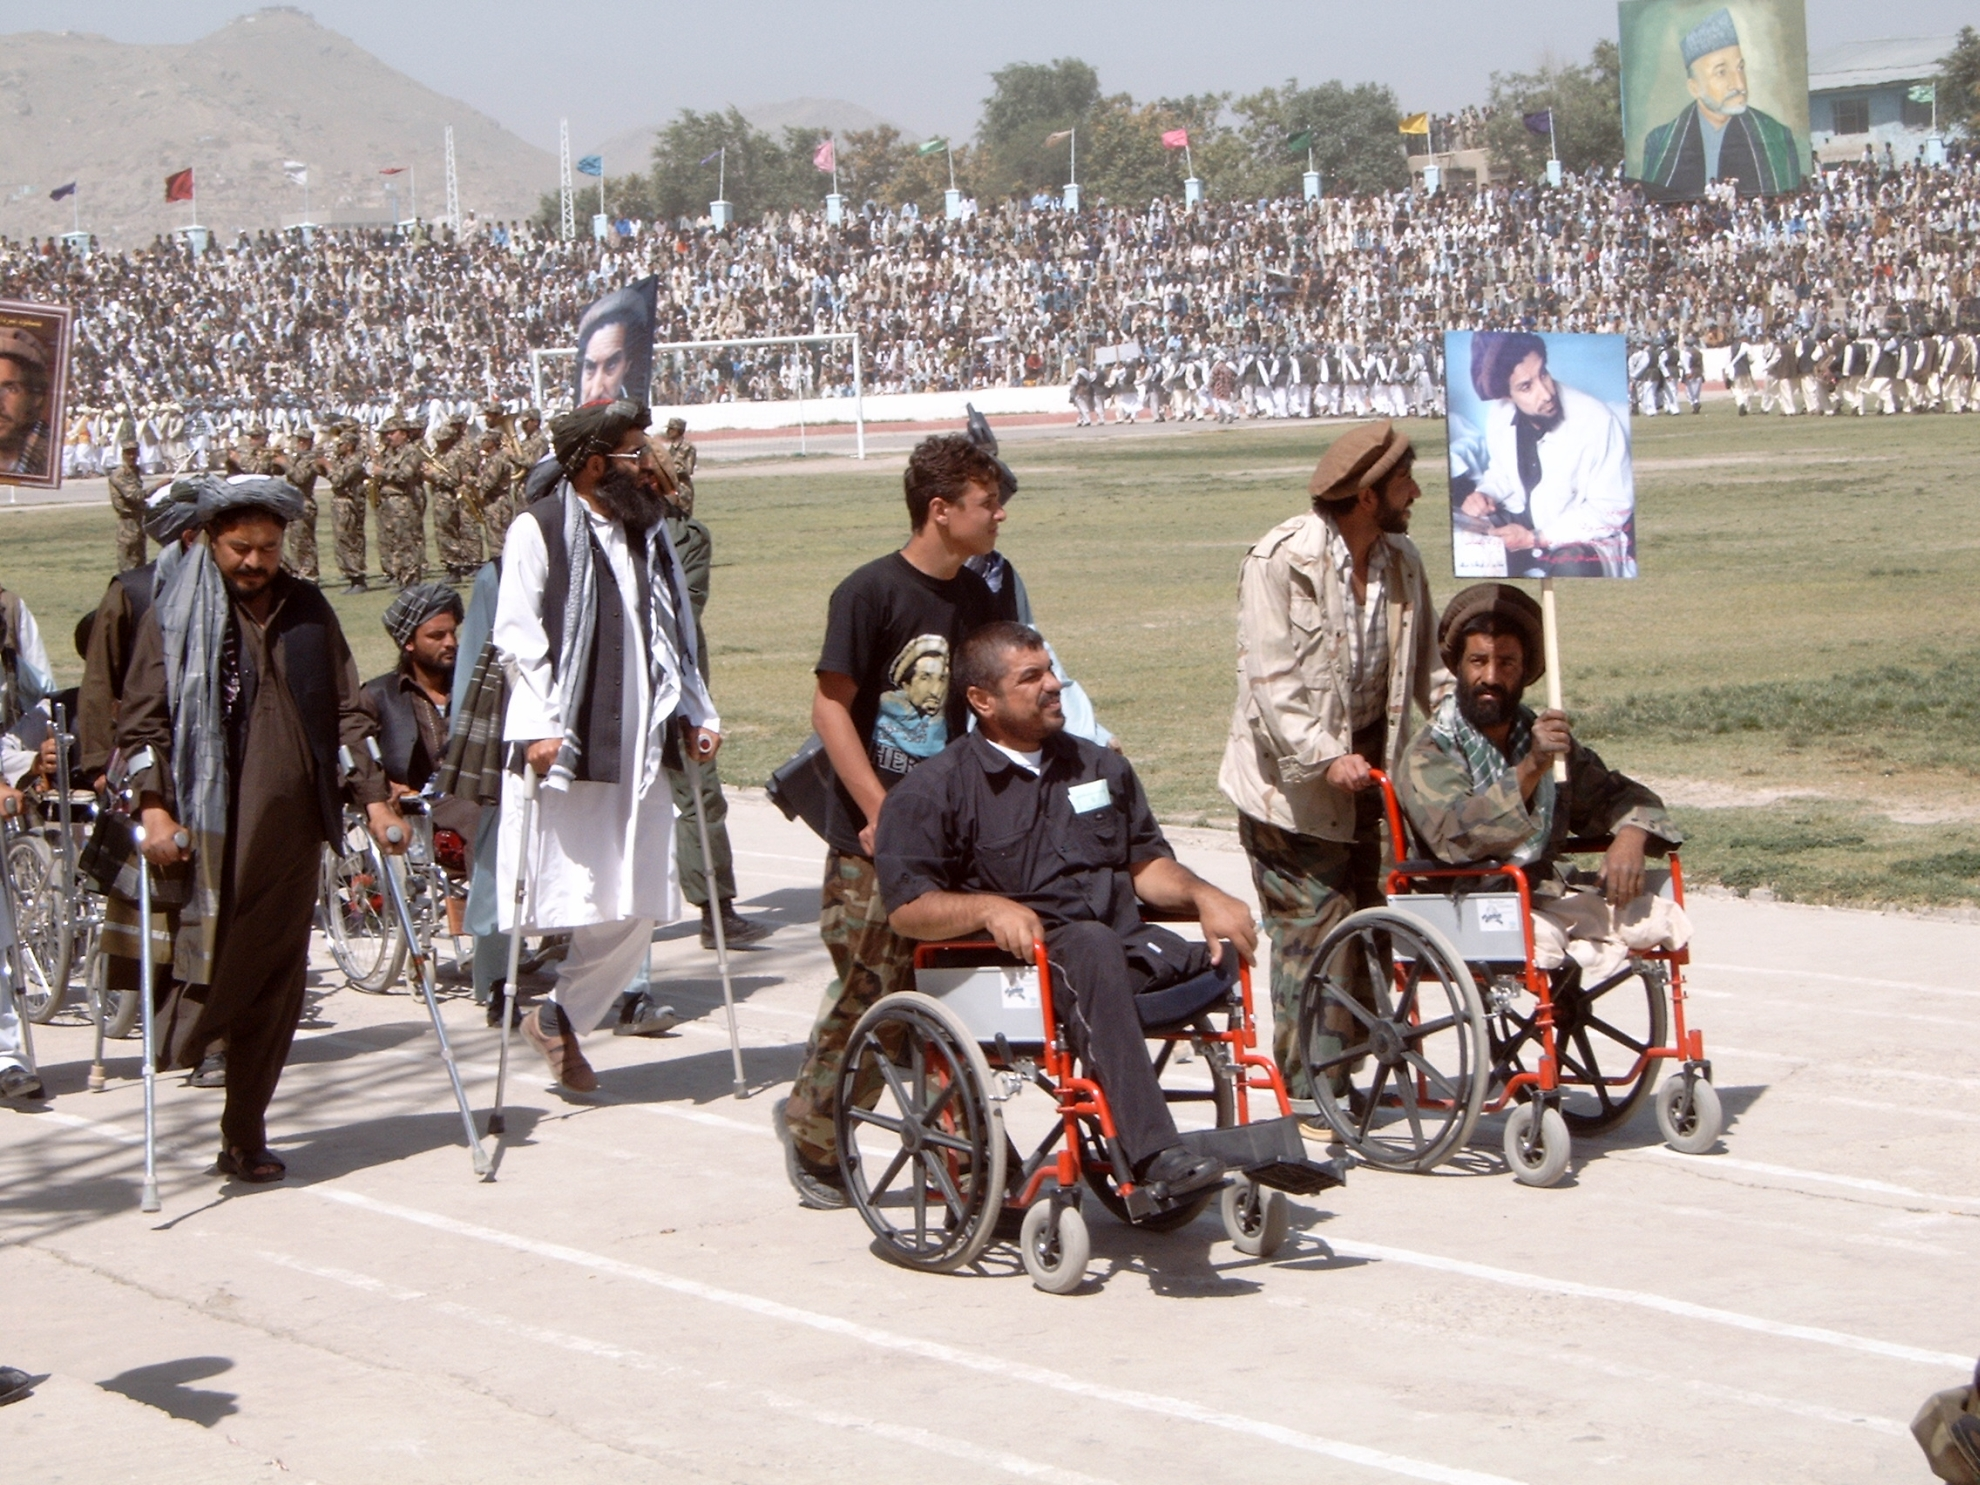 Disabled veterans from the Northern Alliance, that fought against the Taliban, at a parade on Ghazi Stadion. This was where the Taliban used to conduct their public executions. Photo: Jens Kjær Jensen, 2003